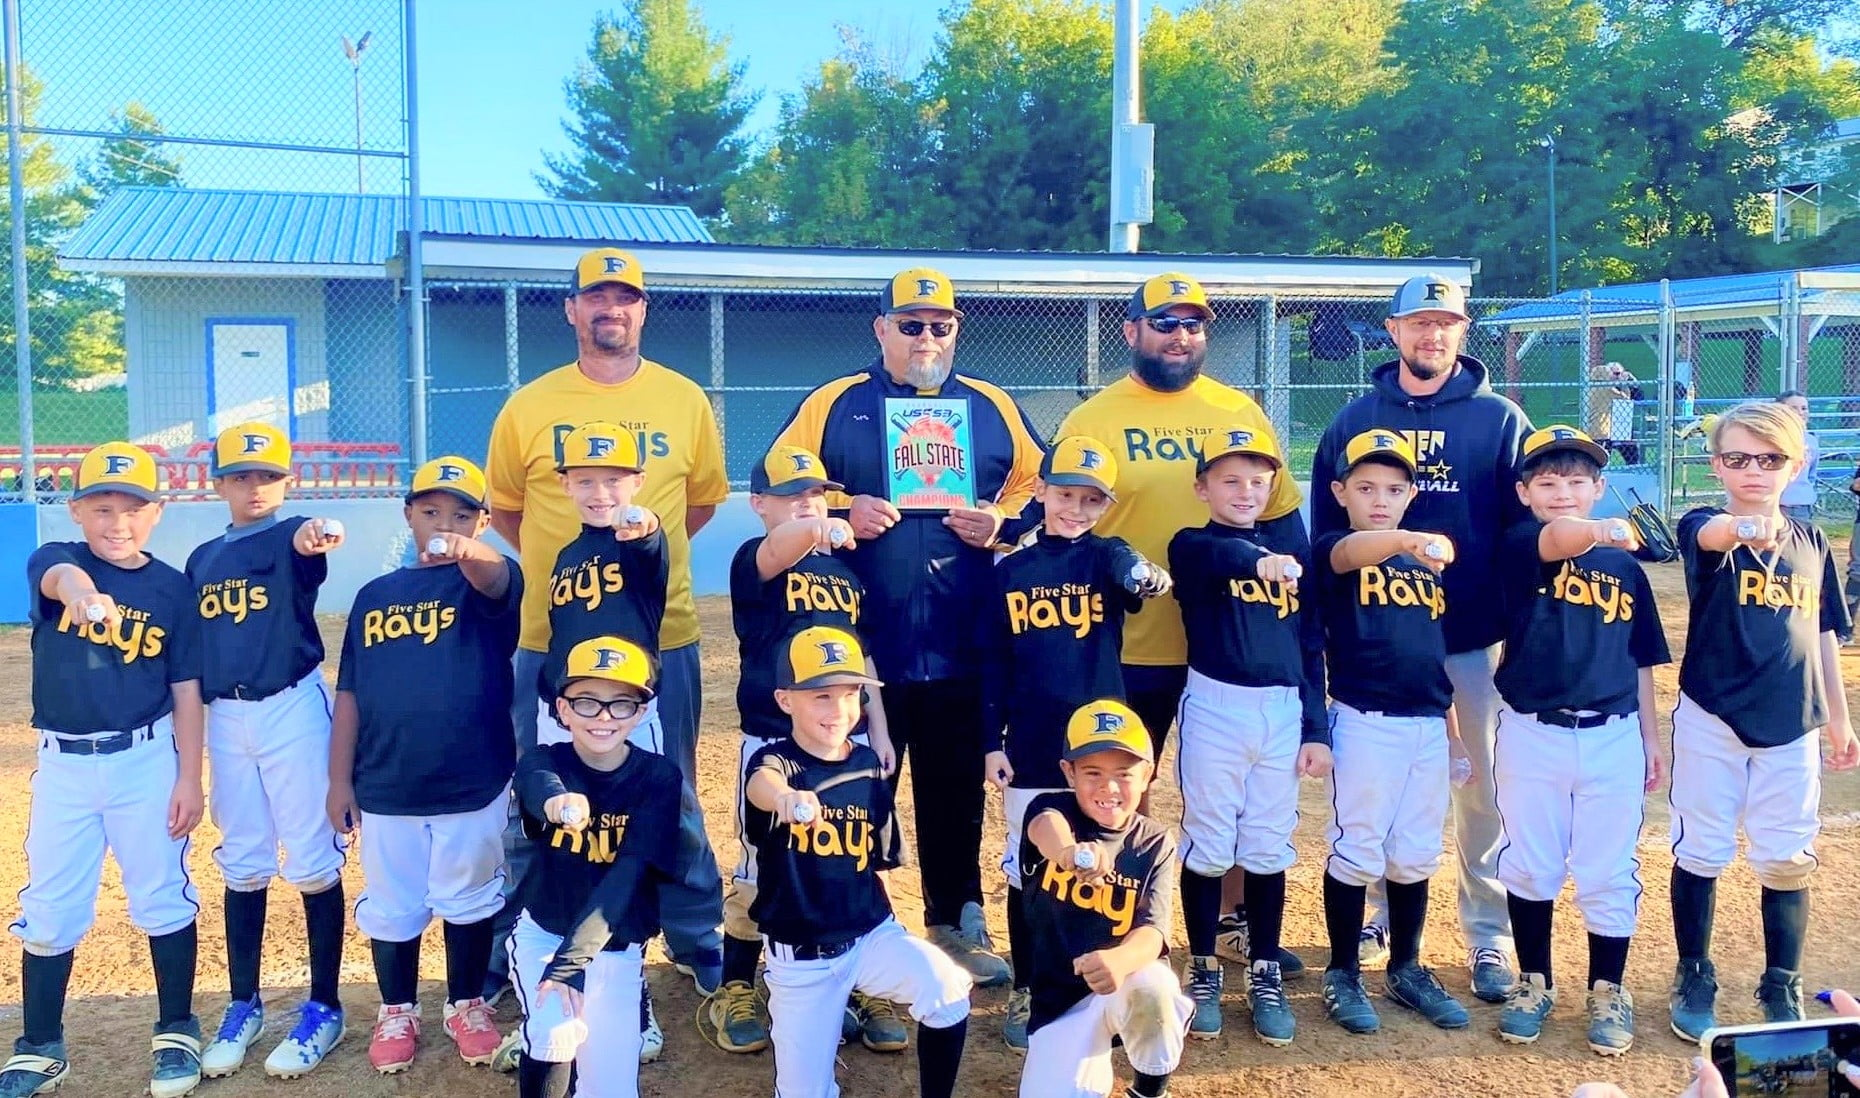 Nine-and-under Rays will state baseball title